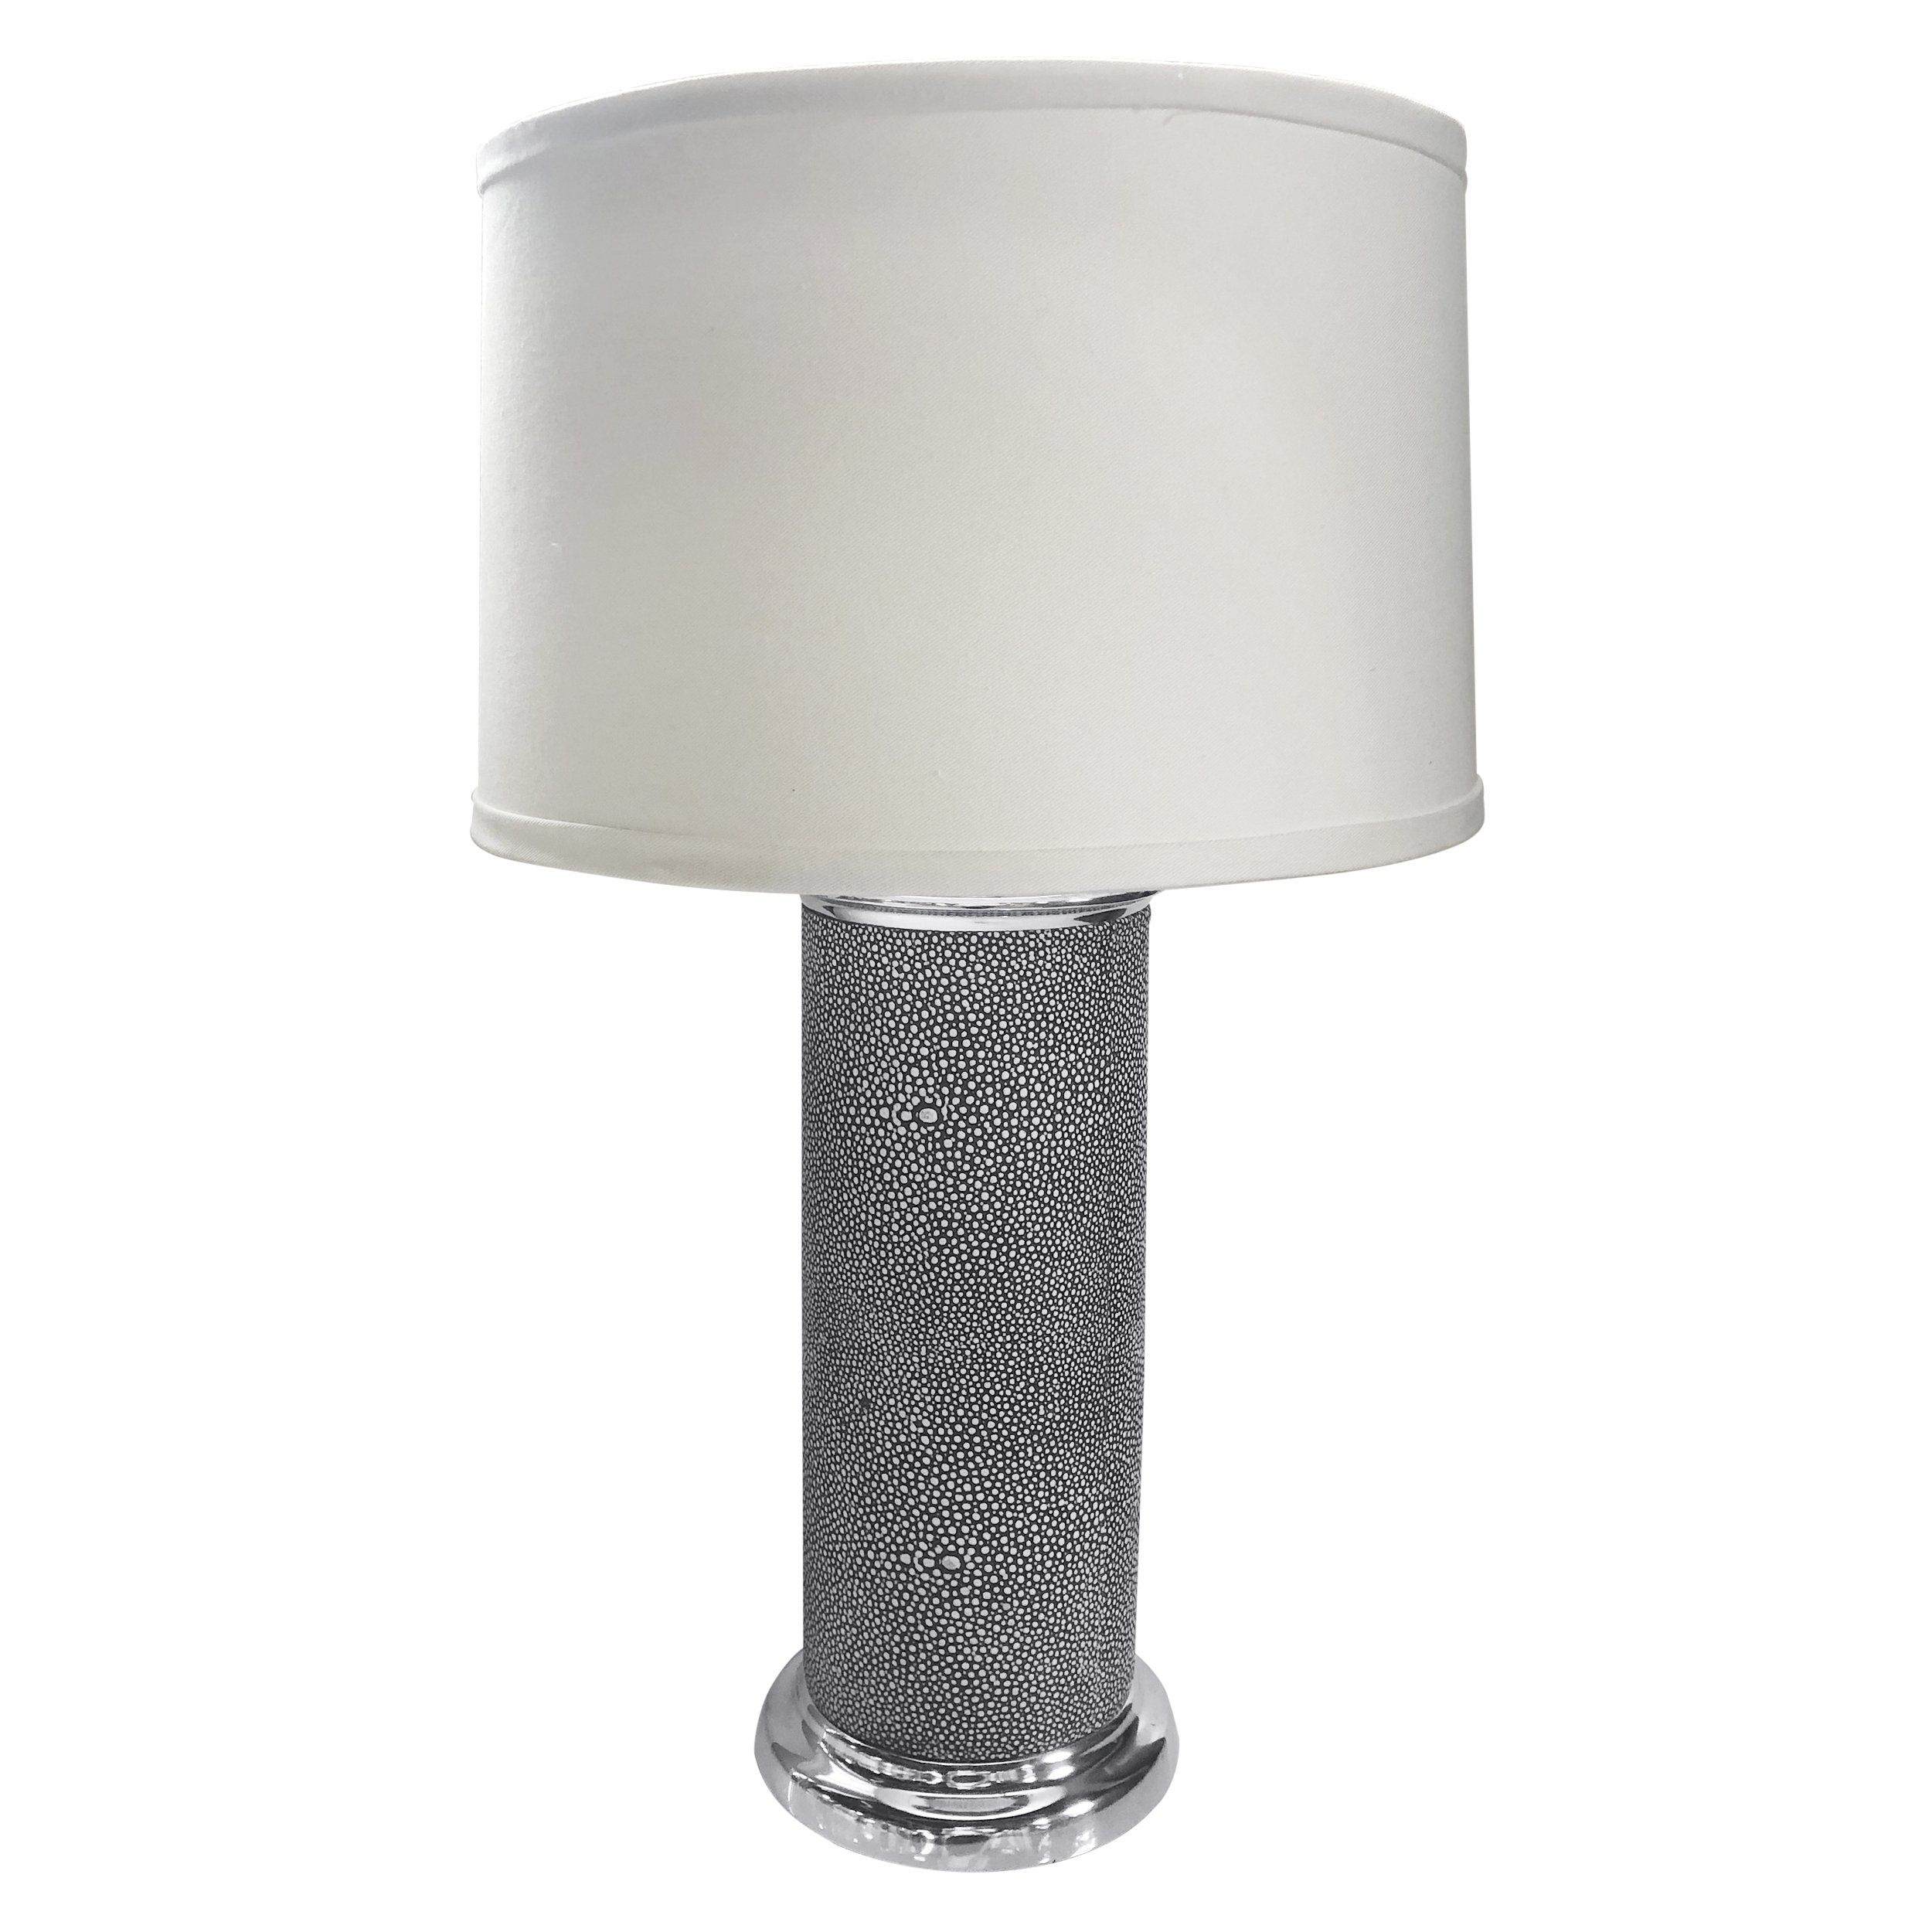 Shagreen Leather Column Table Lamp